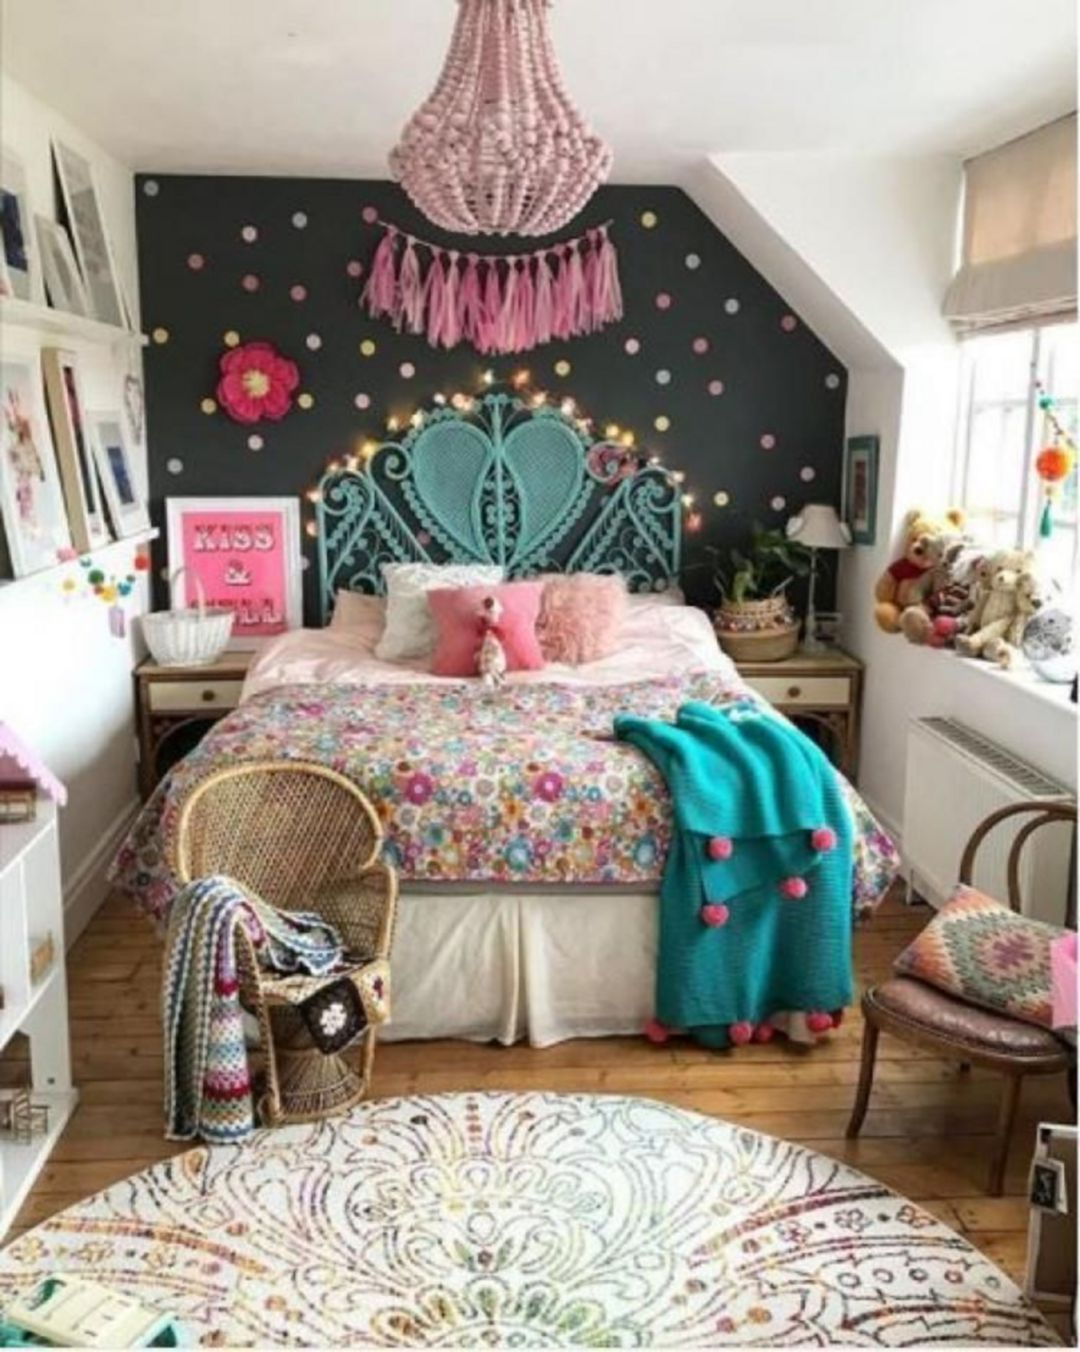 the most pretty bedroom design and decor ideas for girl in